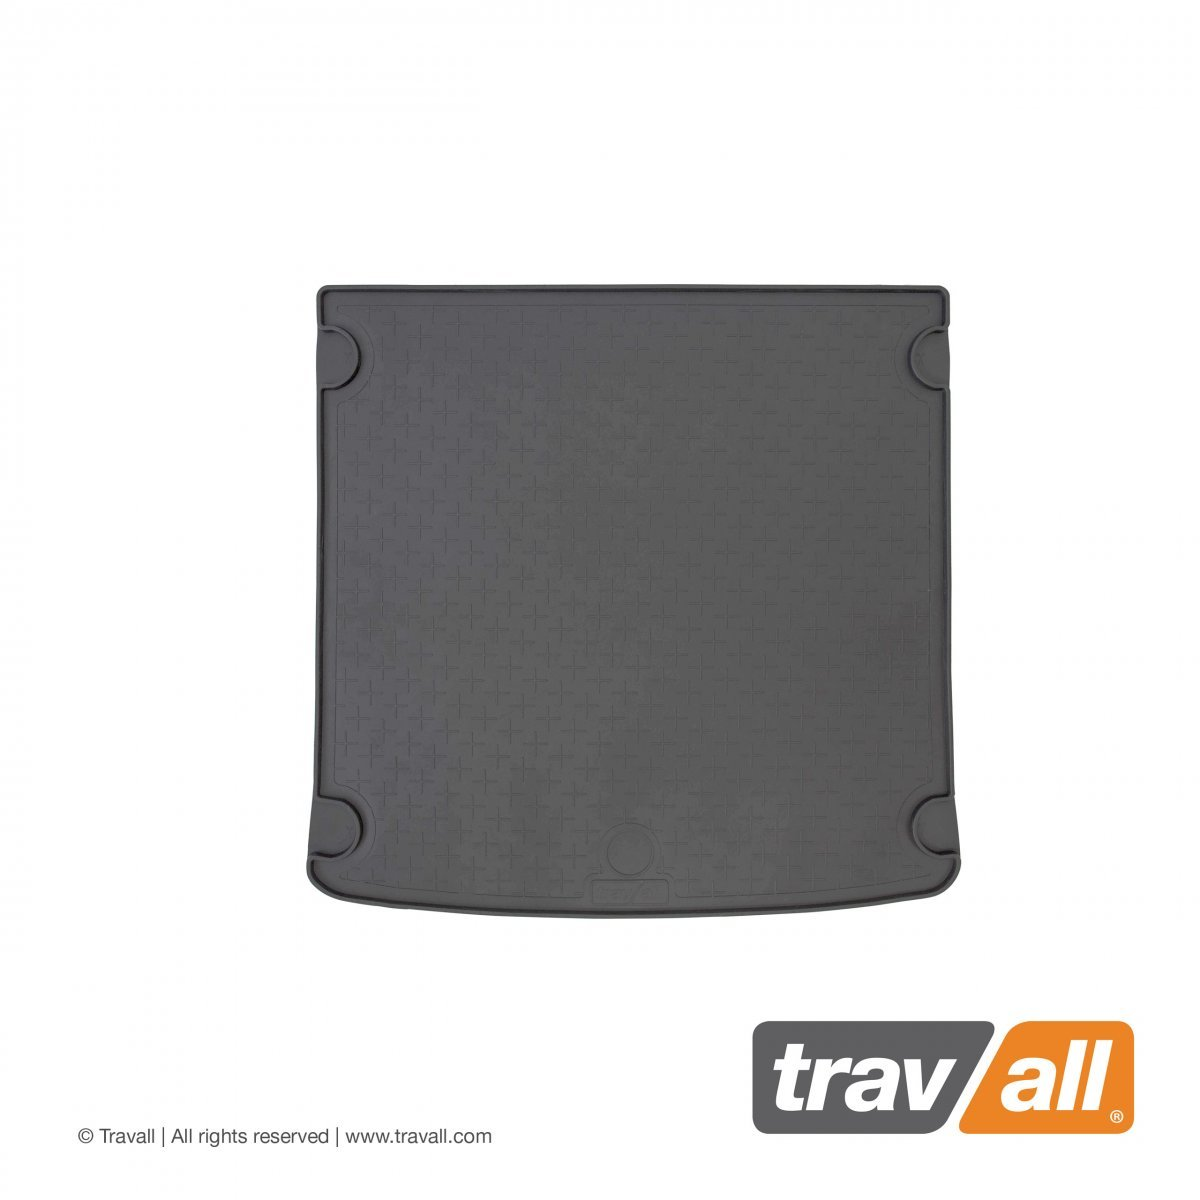 Travall® CARGOMAT voor Audi A4 Avant (2001-2008) / S4 (2002-2008) / RS4 (2005-2008) / SEAT Exeo ST (2008-2013)